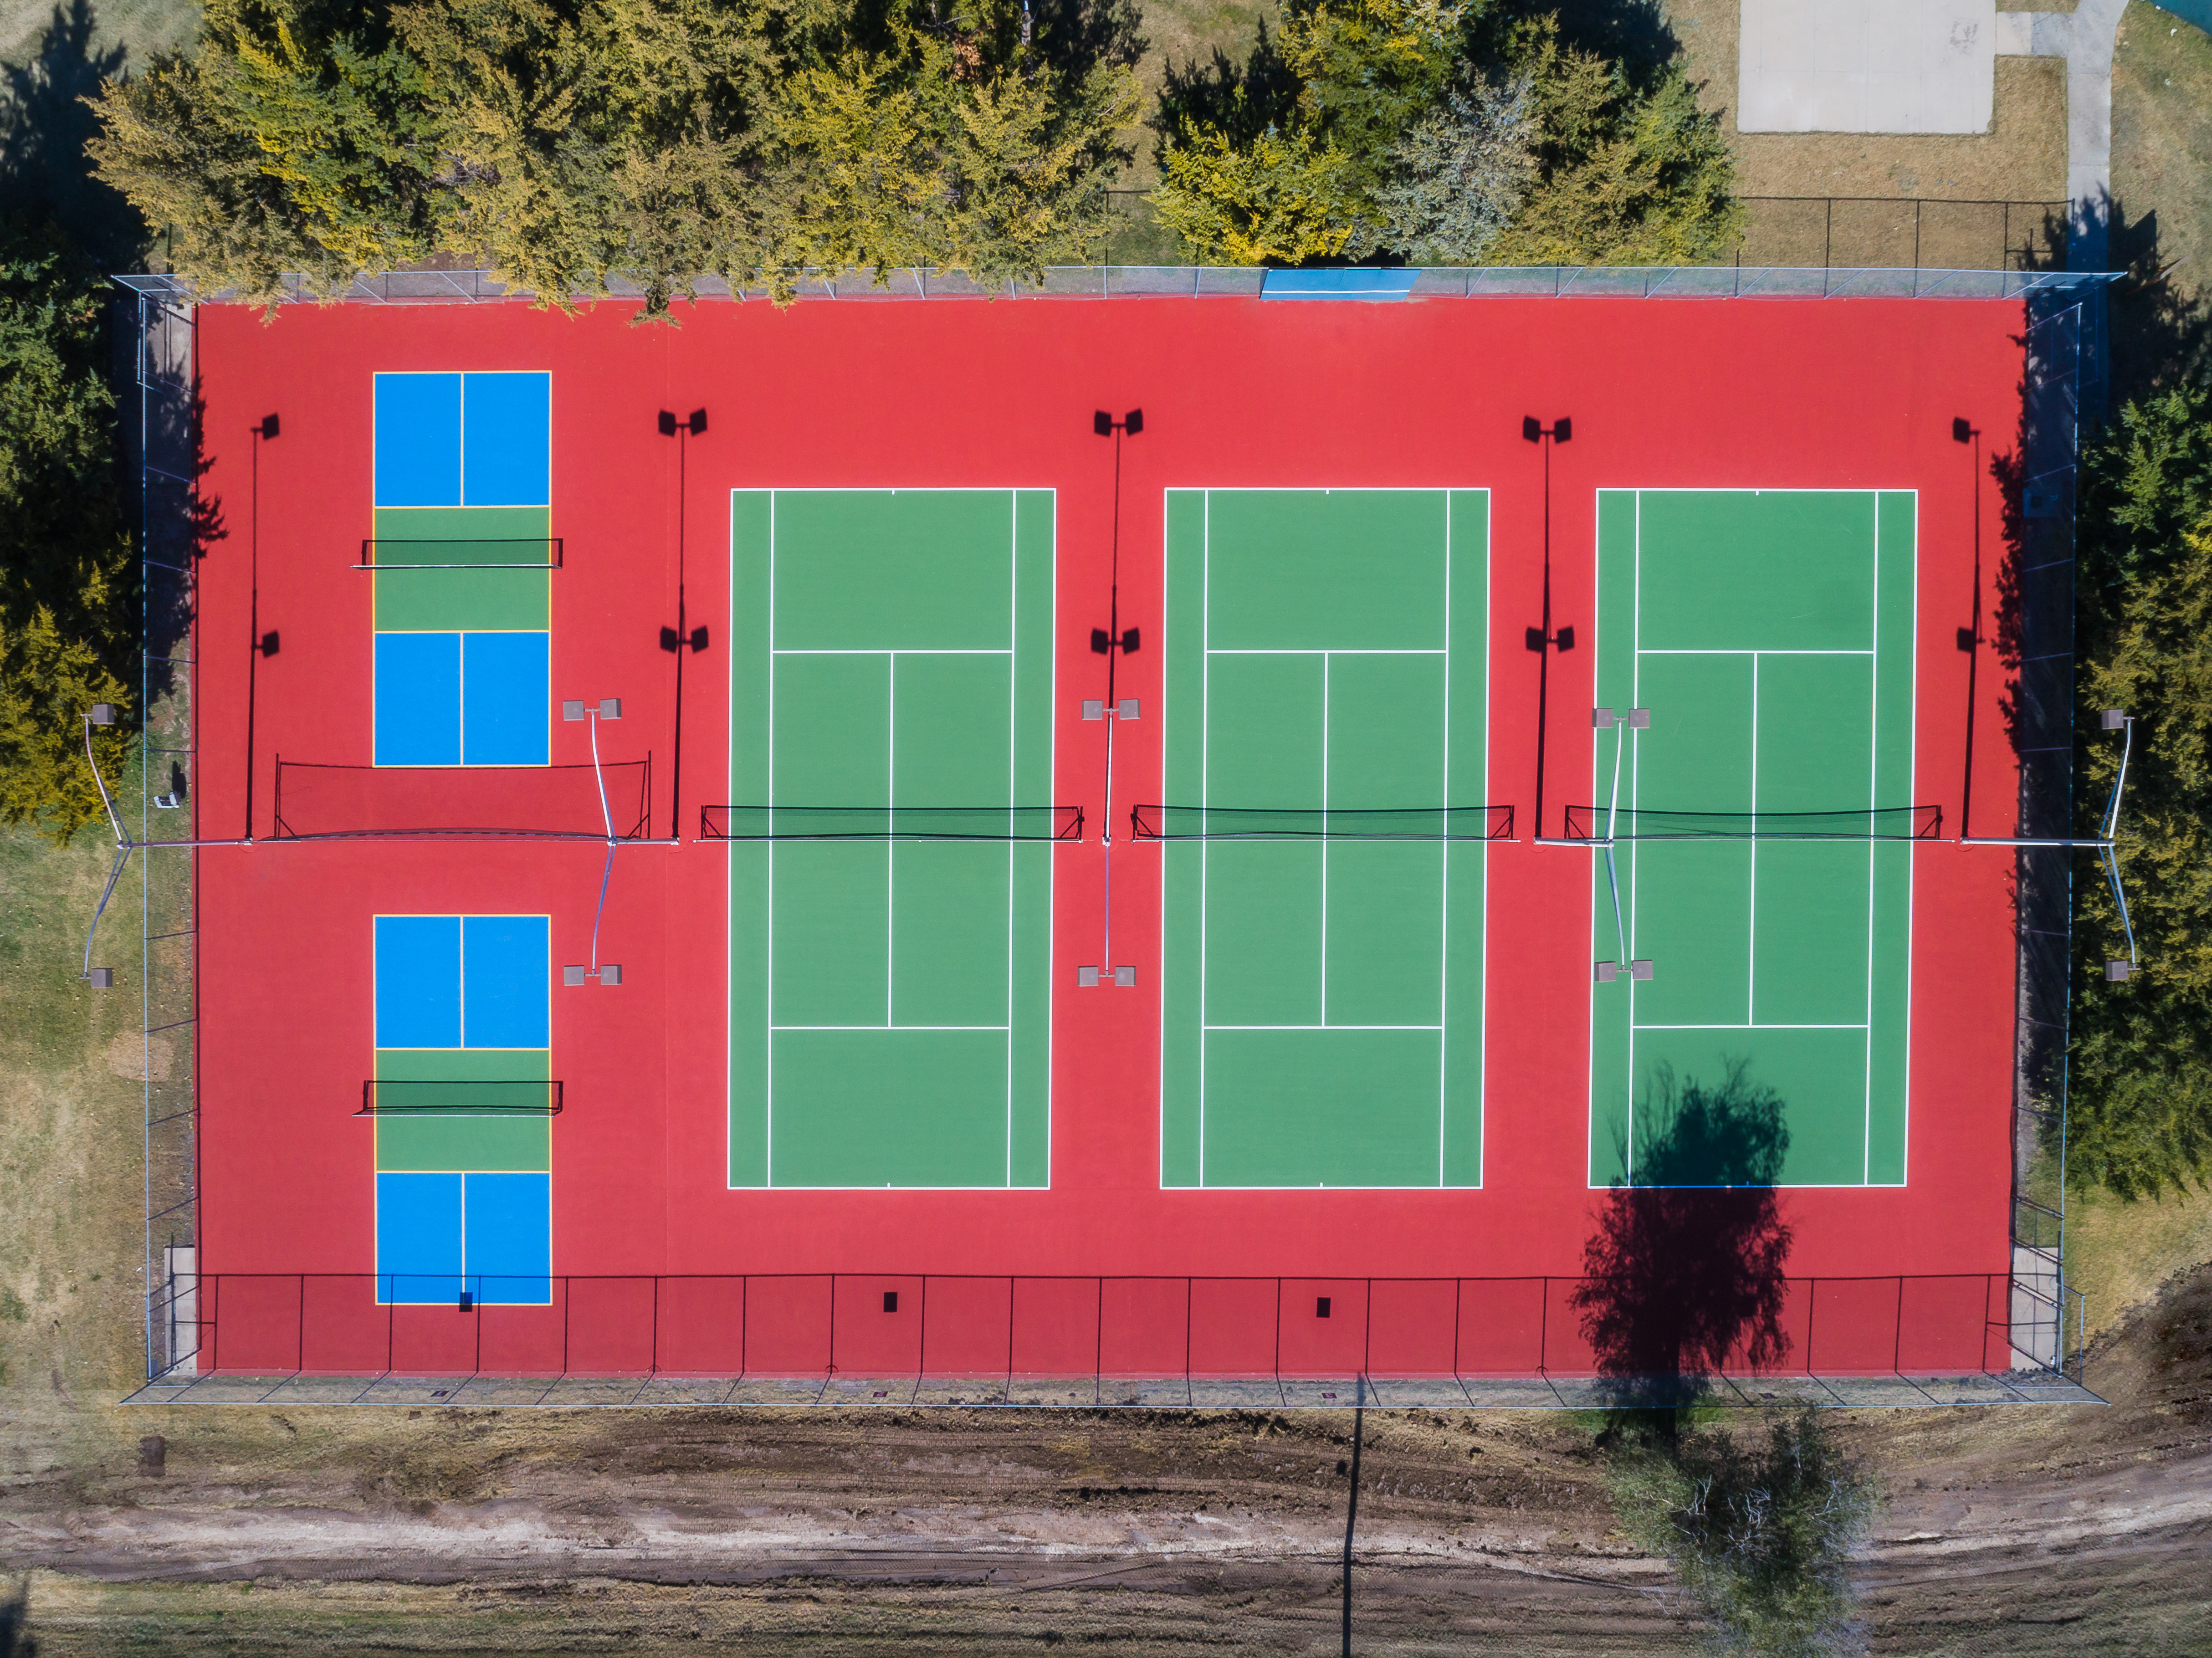 Municipal - Tennis & Pickleball Courts